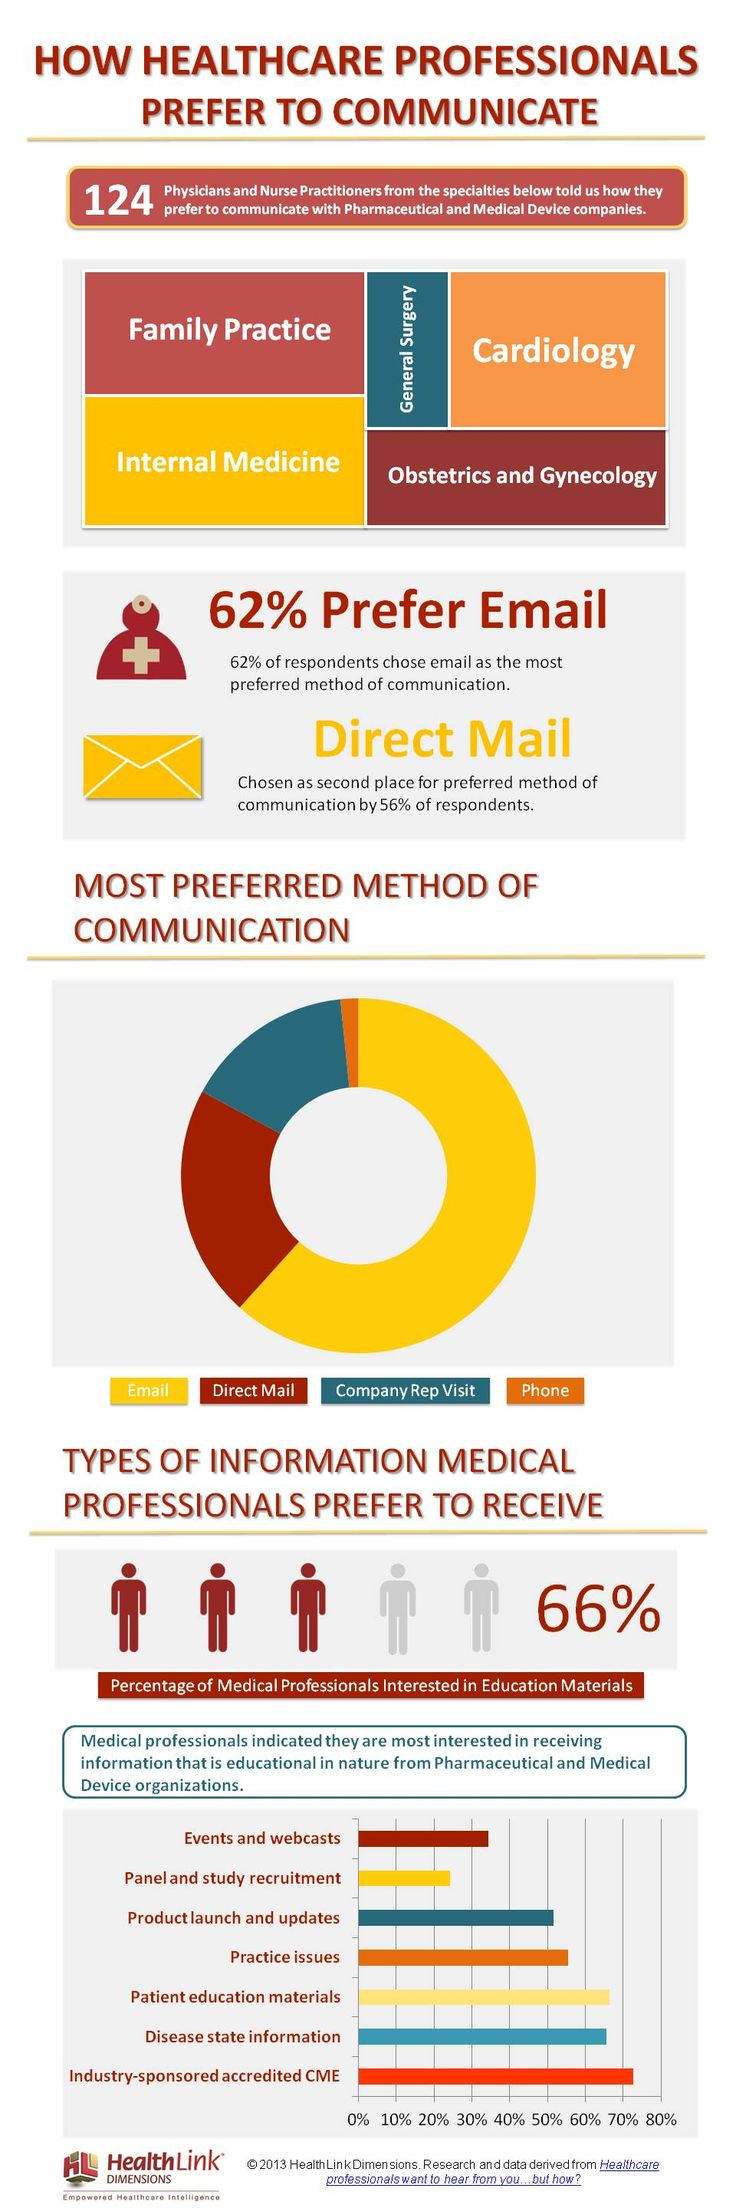 How to reach healthcare professionals effectively! @HealthLinkDimensions @Justin Dickinson Hipps #HealthIT #EmailMarketing